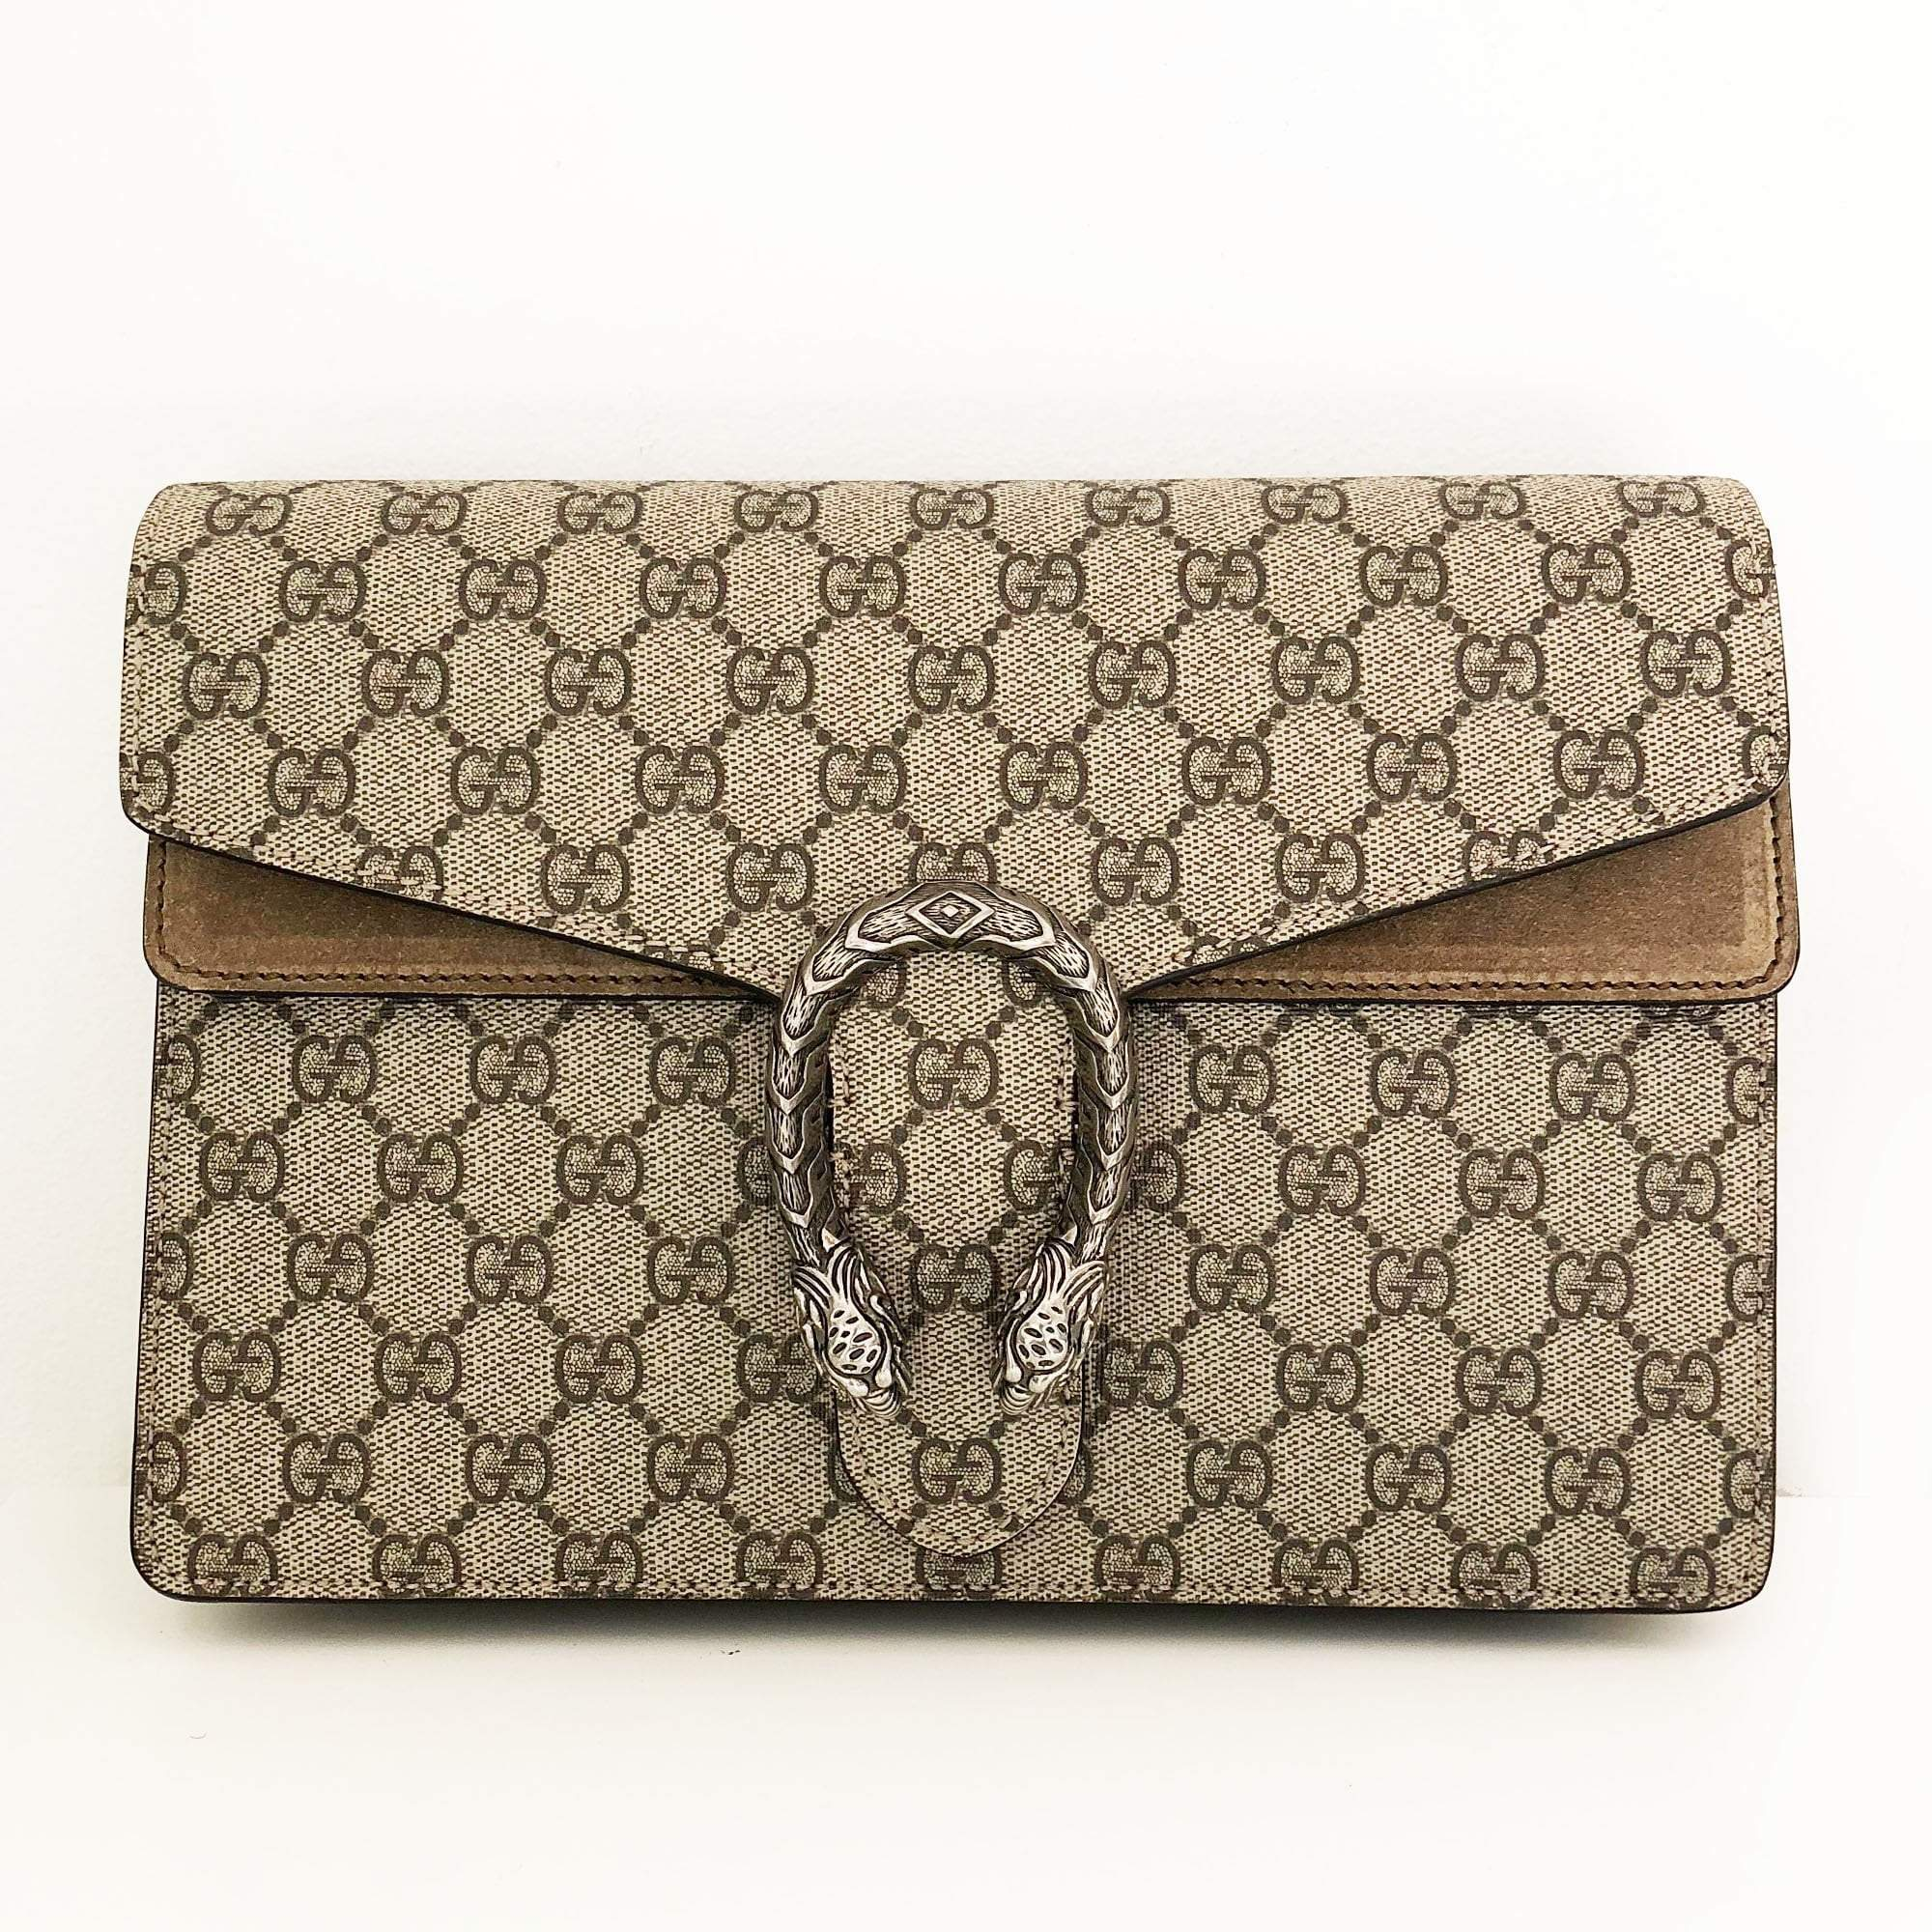 7f928e549c08 Gucci Dionysus Gg Supreme Canvas Belt Bag – Garderobe